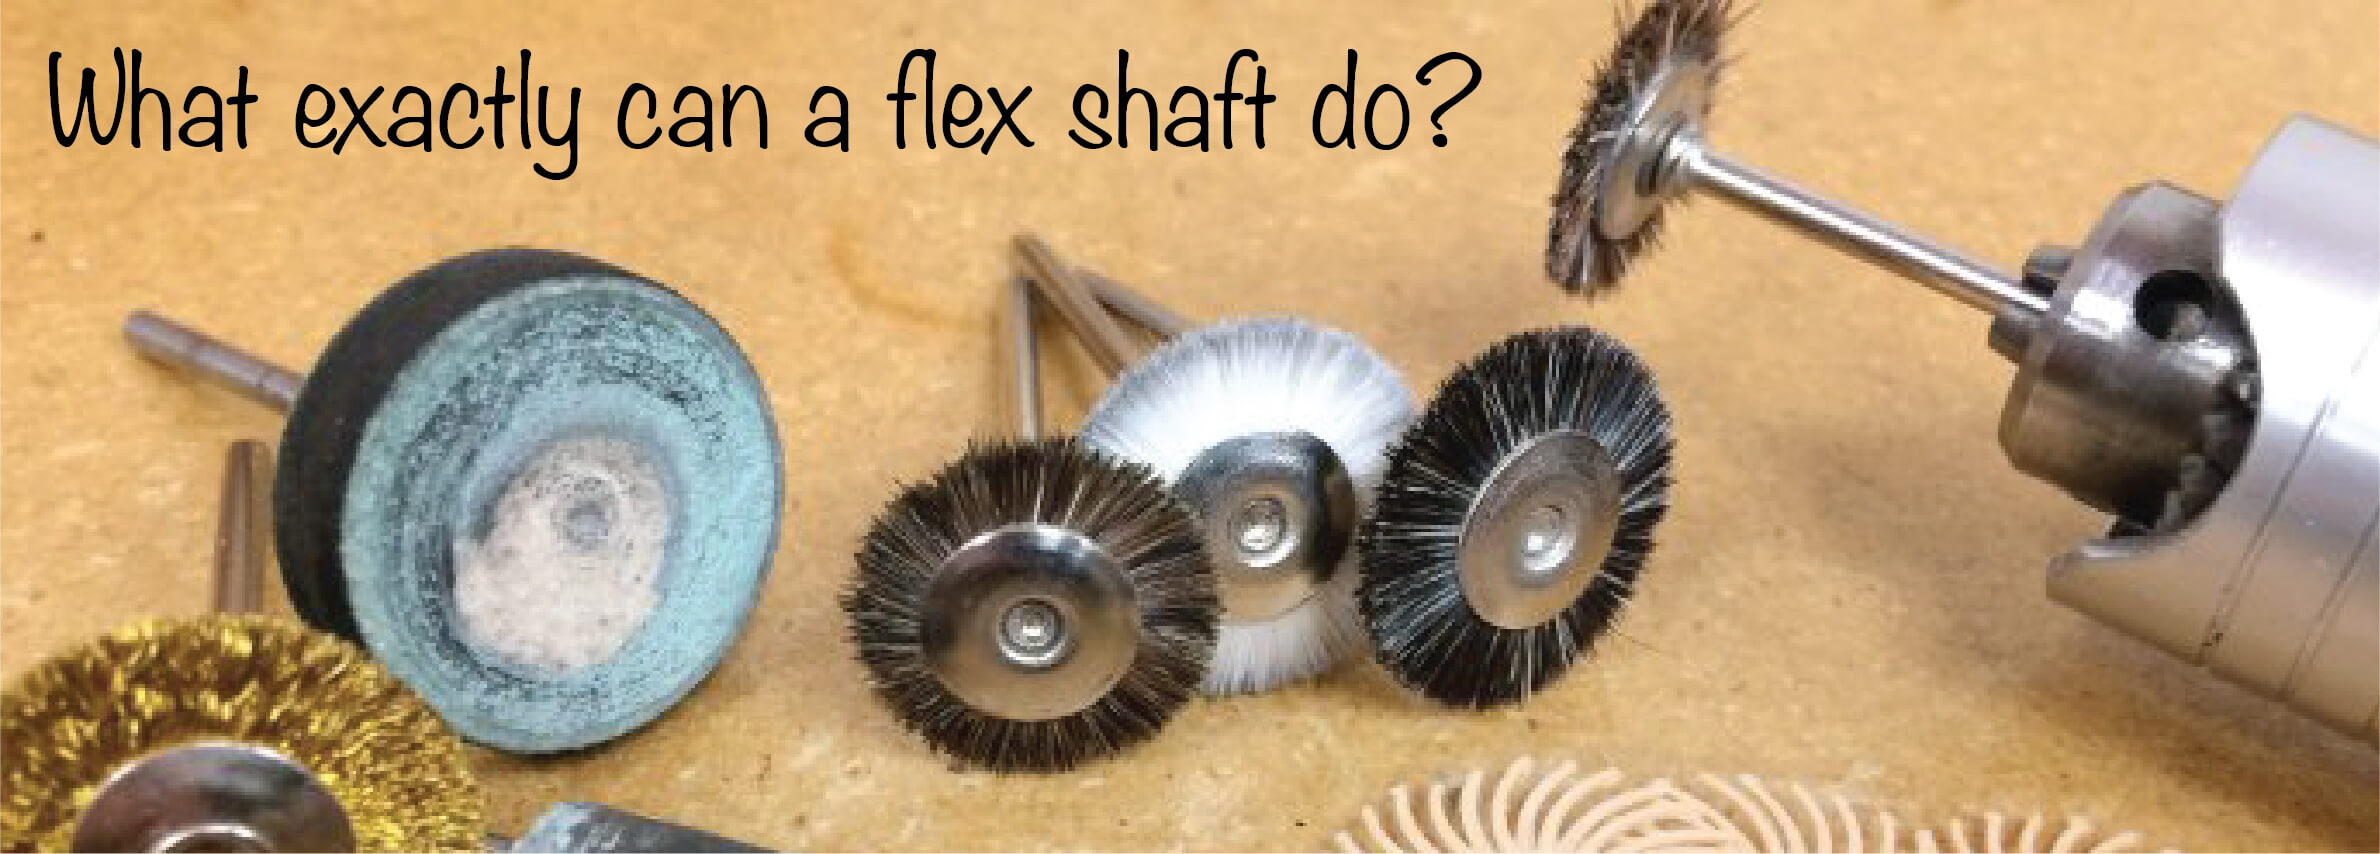 What exactly can a flex shaft do?